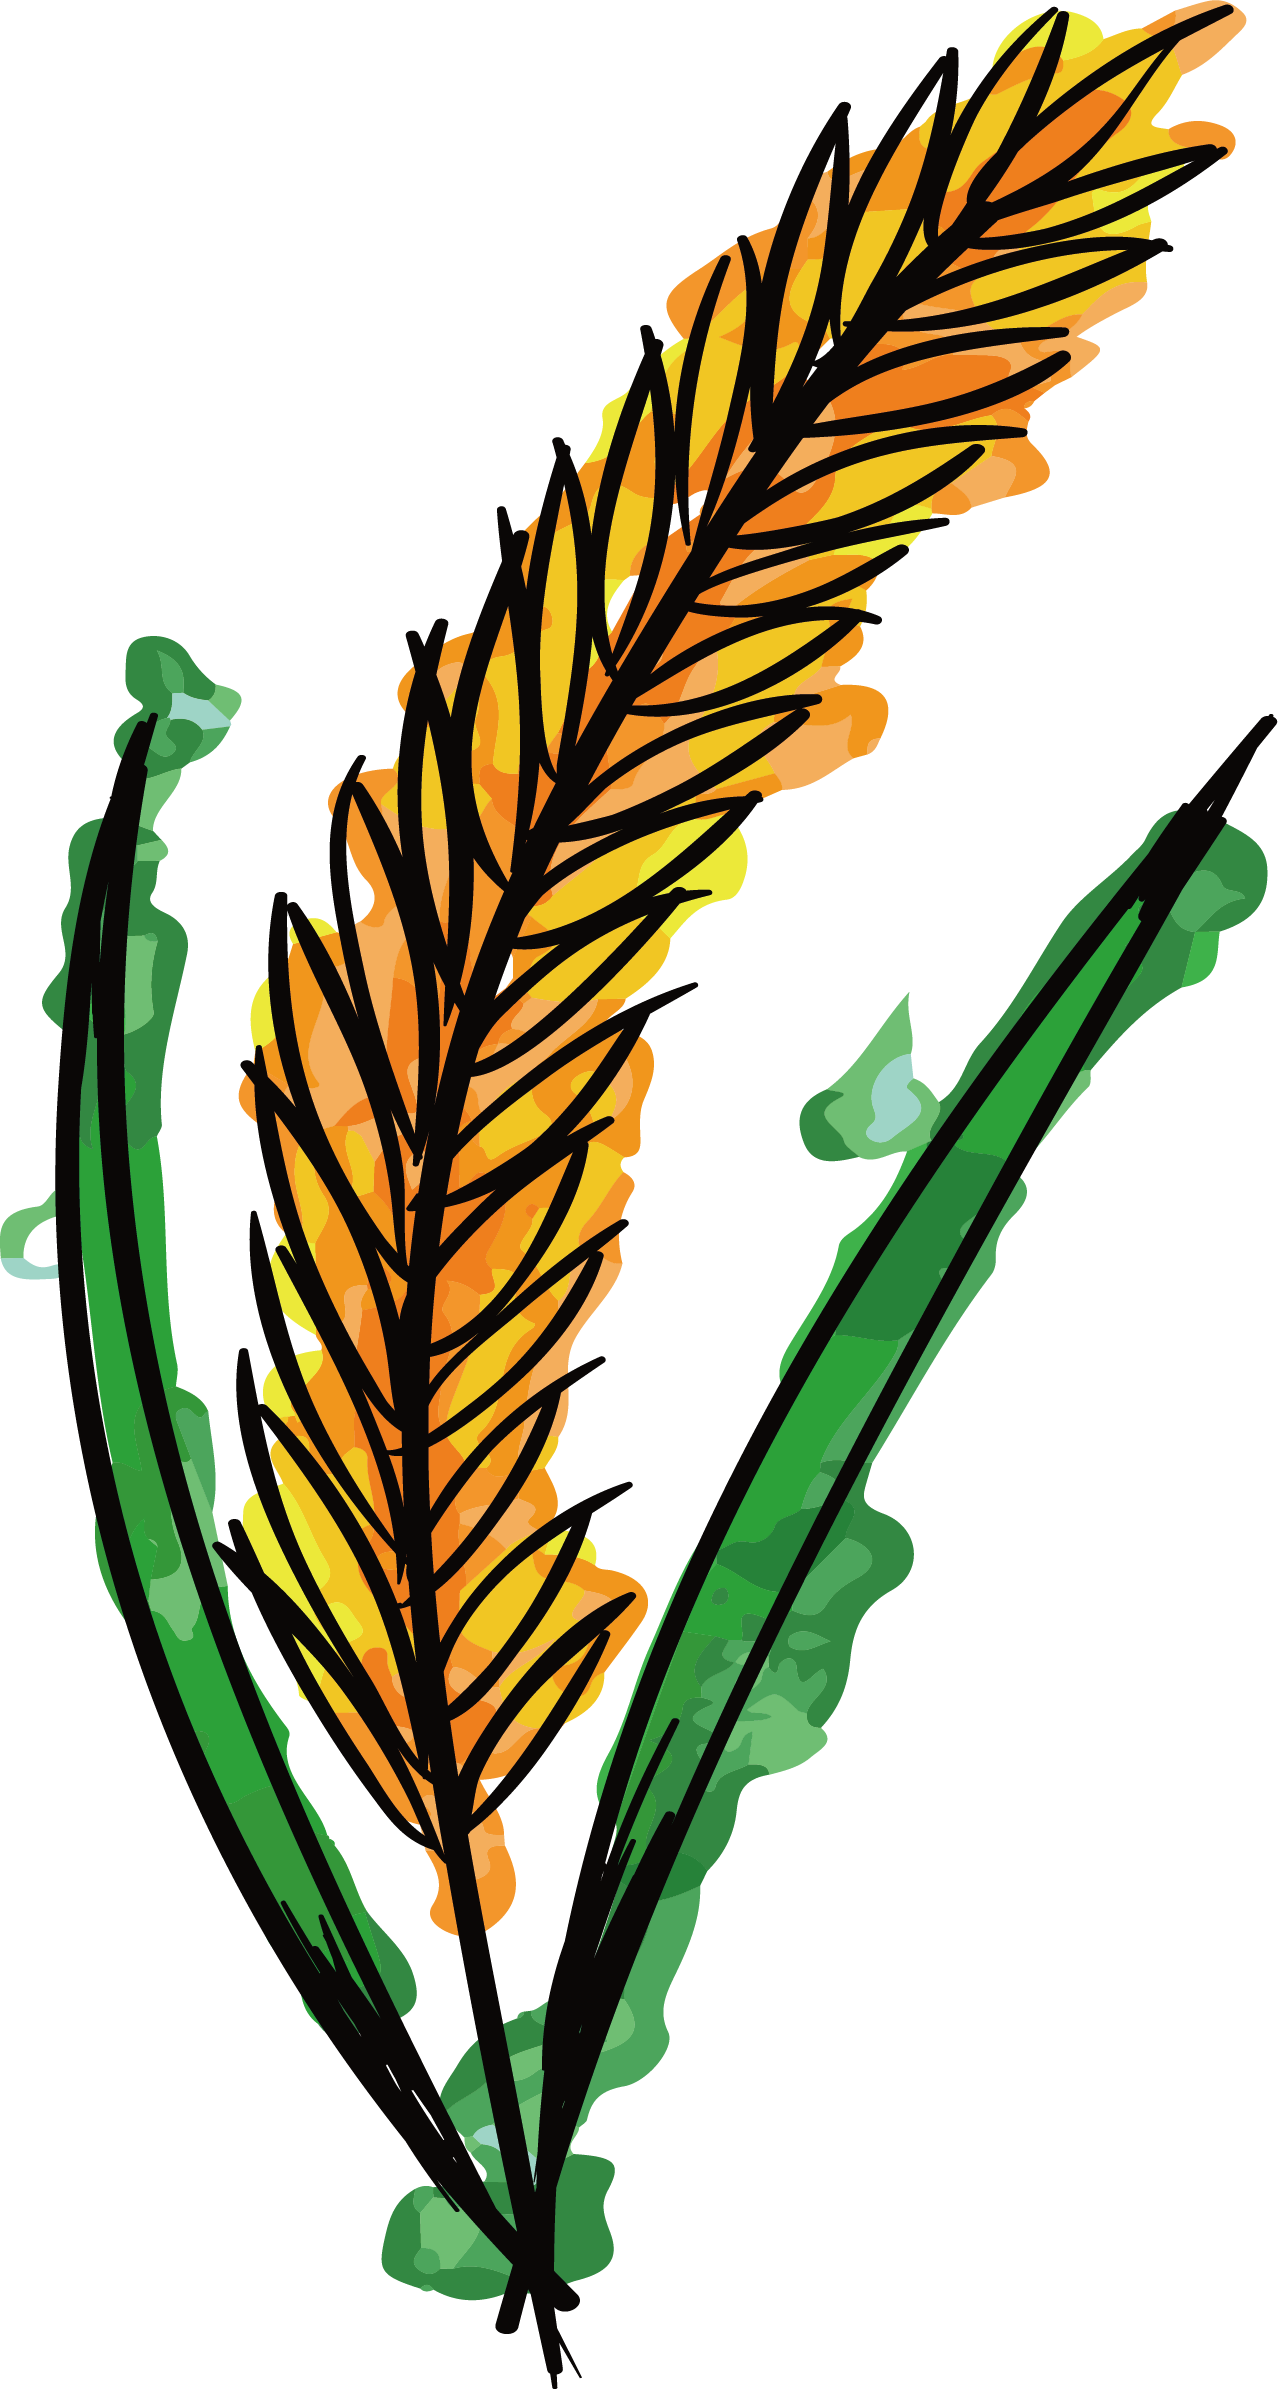 Watercolor painting clip art. Wheat clipart branch